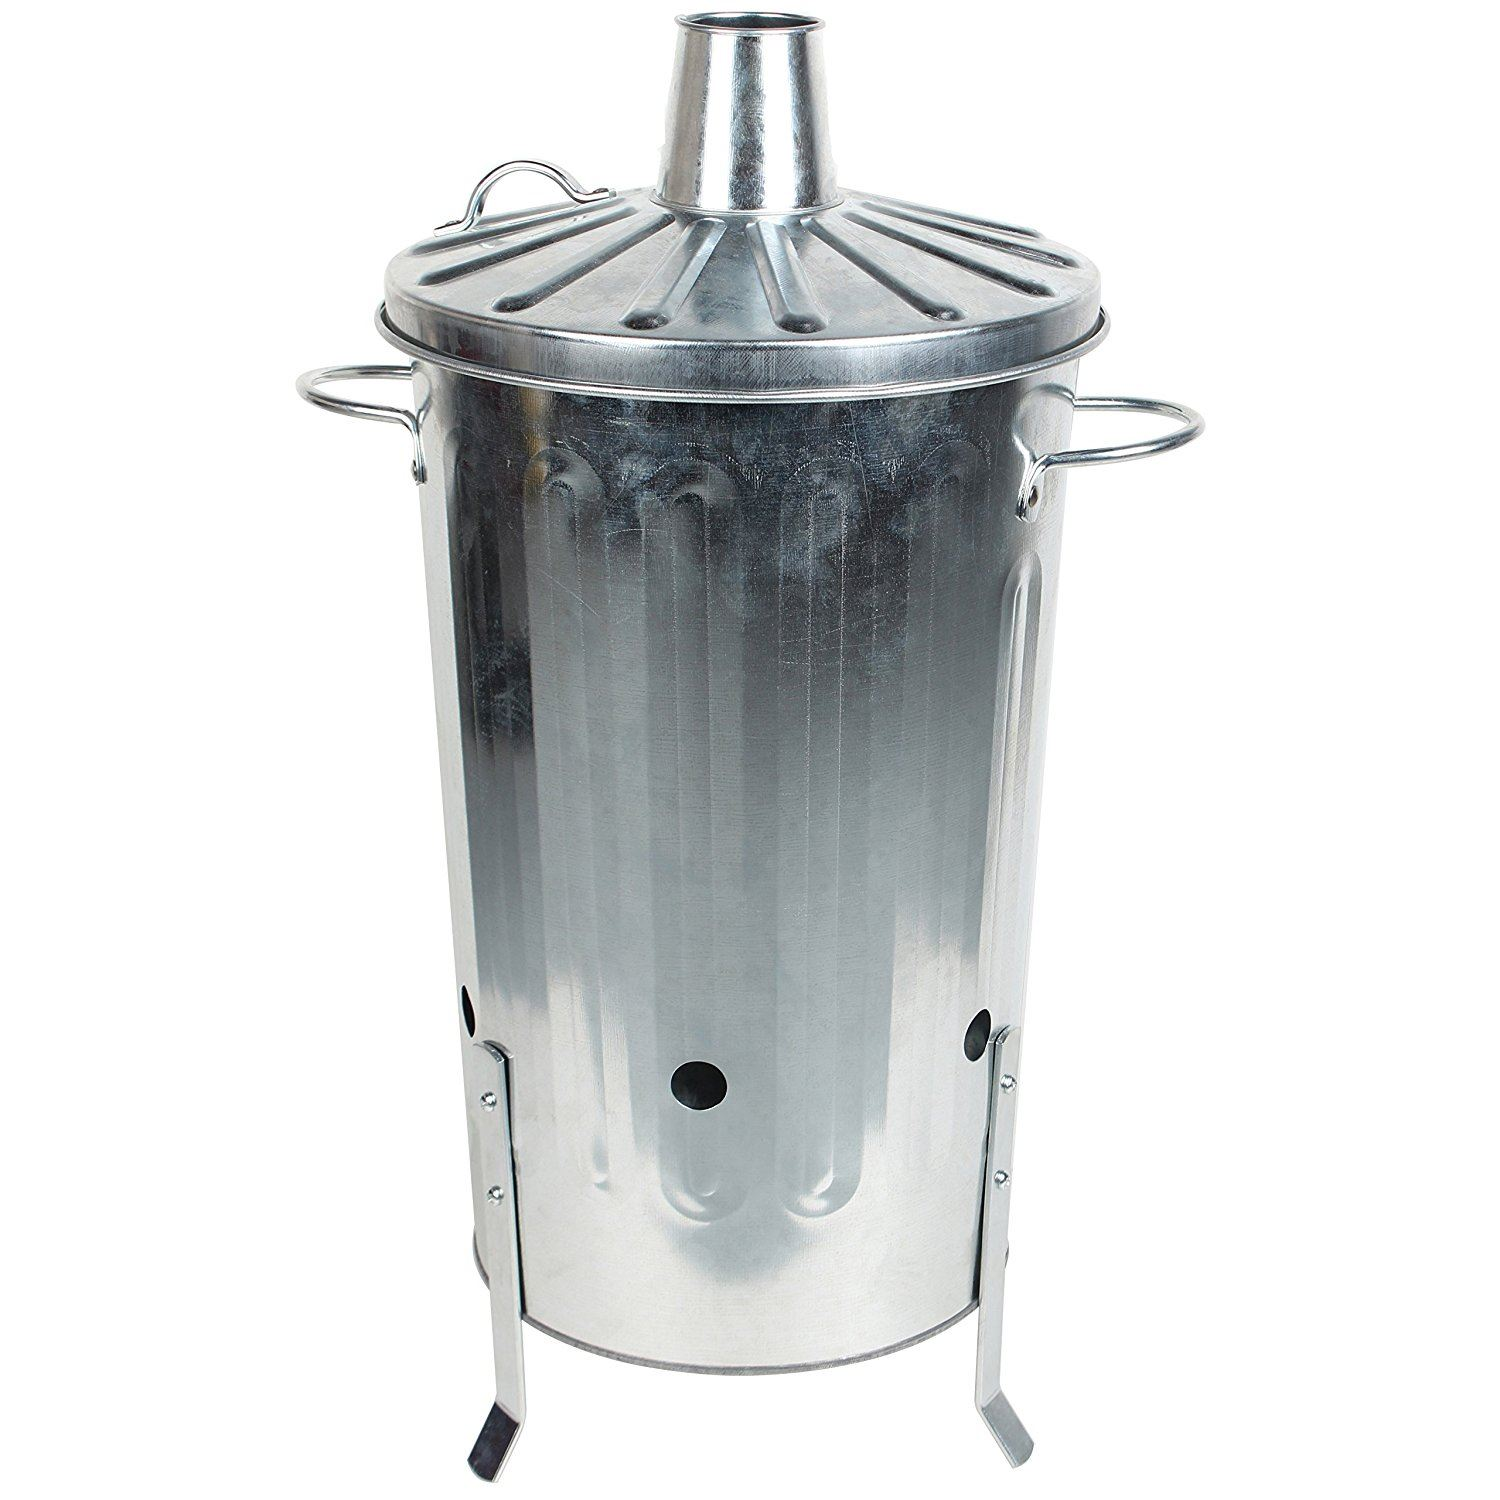 Prepossessing Small Medium Large Metal Garden Incinerator Fire Burning Bin With  With Engaging Smallmediumlargemetalgardenincineratorfireburning With Alluring Garden Vac Reviews Also Sherbrooke Gardens In Addition Jade Garden Woodbridge And Garden Workshop Plans As Well As Hampstead Garden Additionally Small Back Garden Designs From Ebaycouk With   Engaging Small Medium Large Metal Garden Incinerator Fire Burning Bin With  With Alluring Smallmediumlargemetalgardenincineratorfireburning And Prepossessing Garden Vac Reviews Also Sherbrooke Gardens In Addition Jade Garden Woodbridge From Ebaycouk